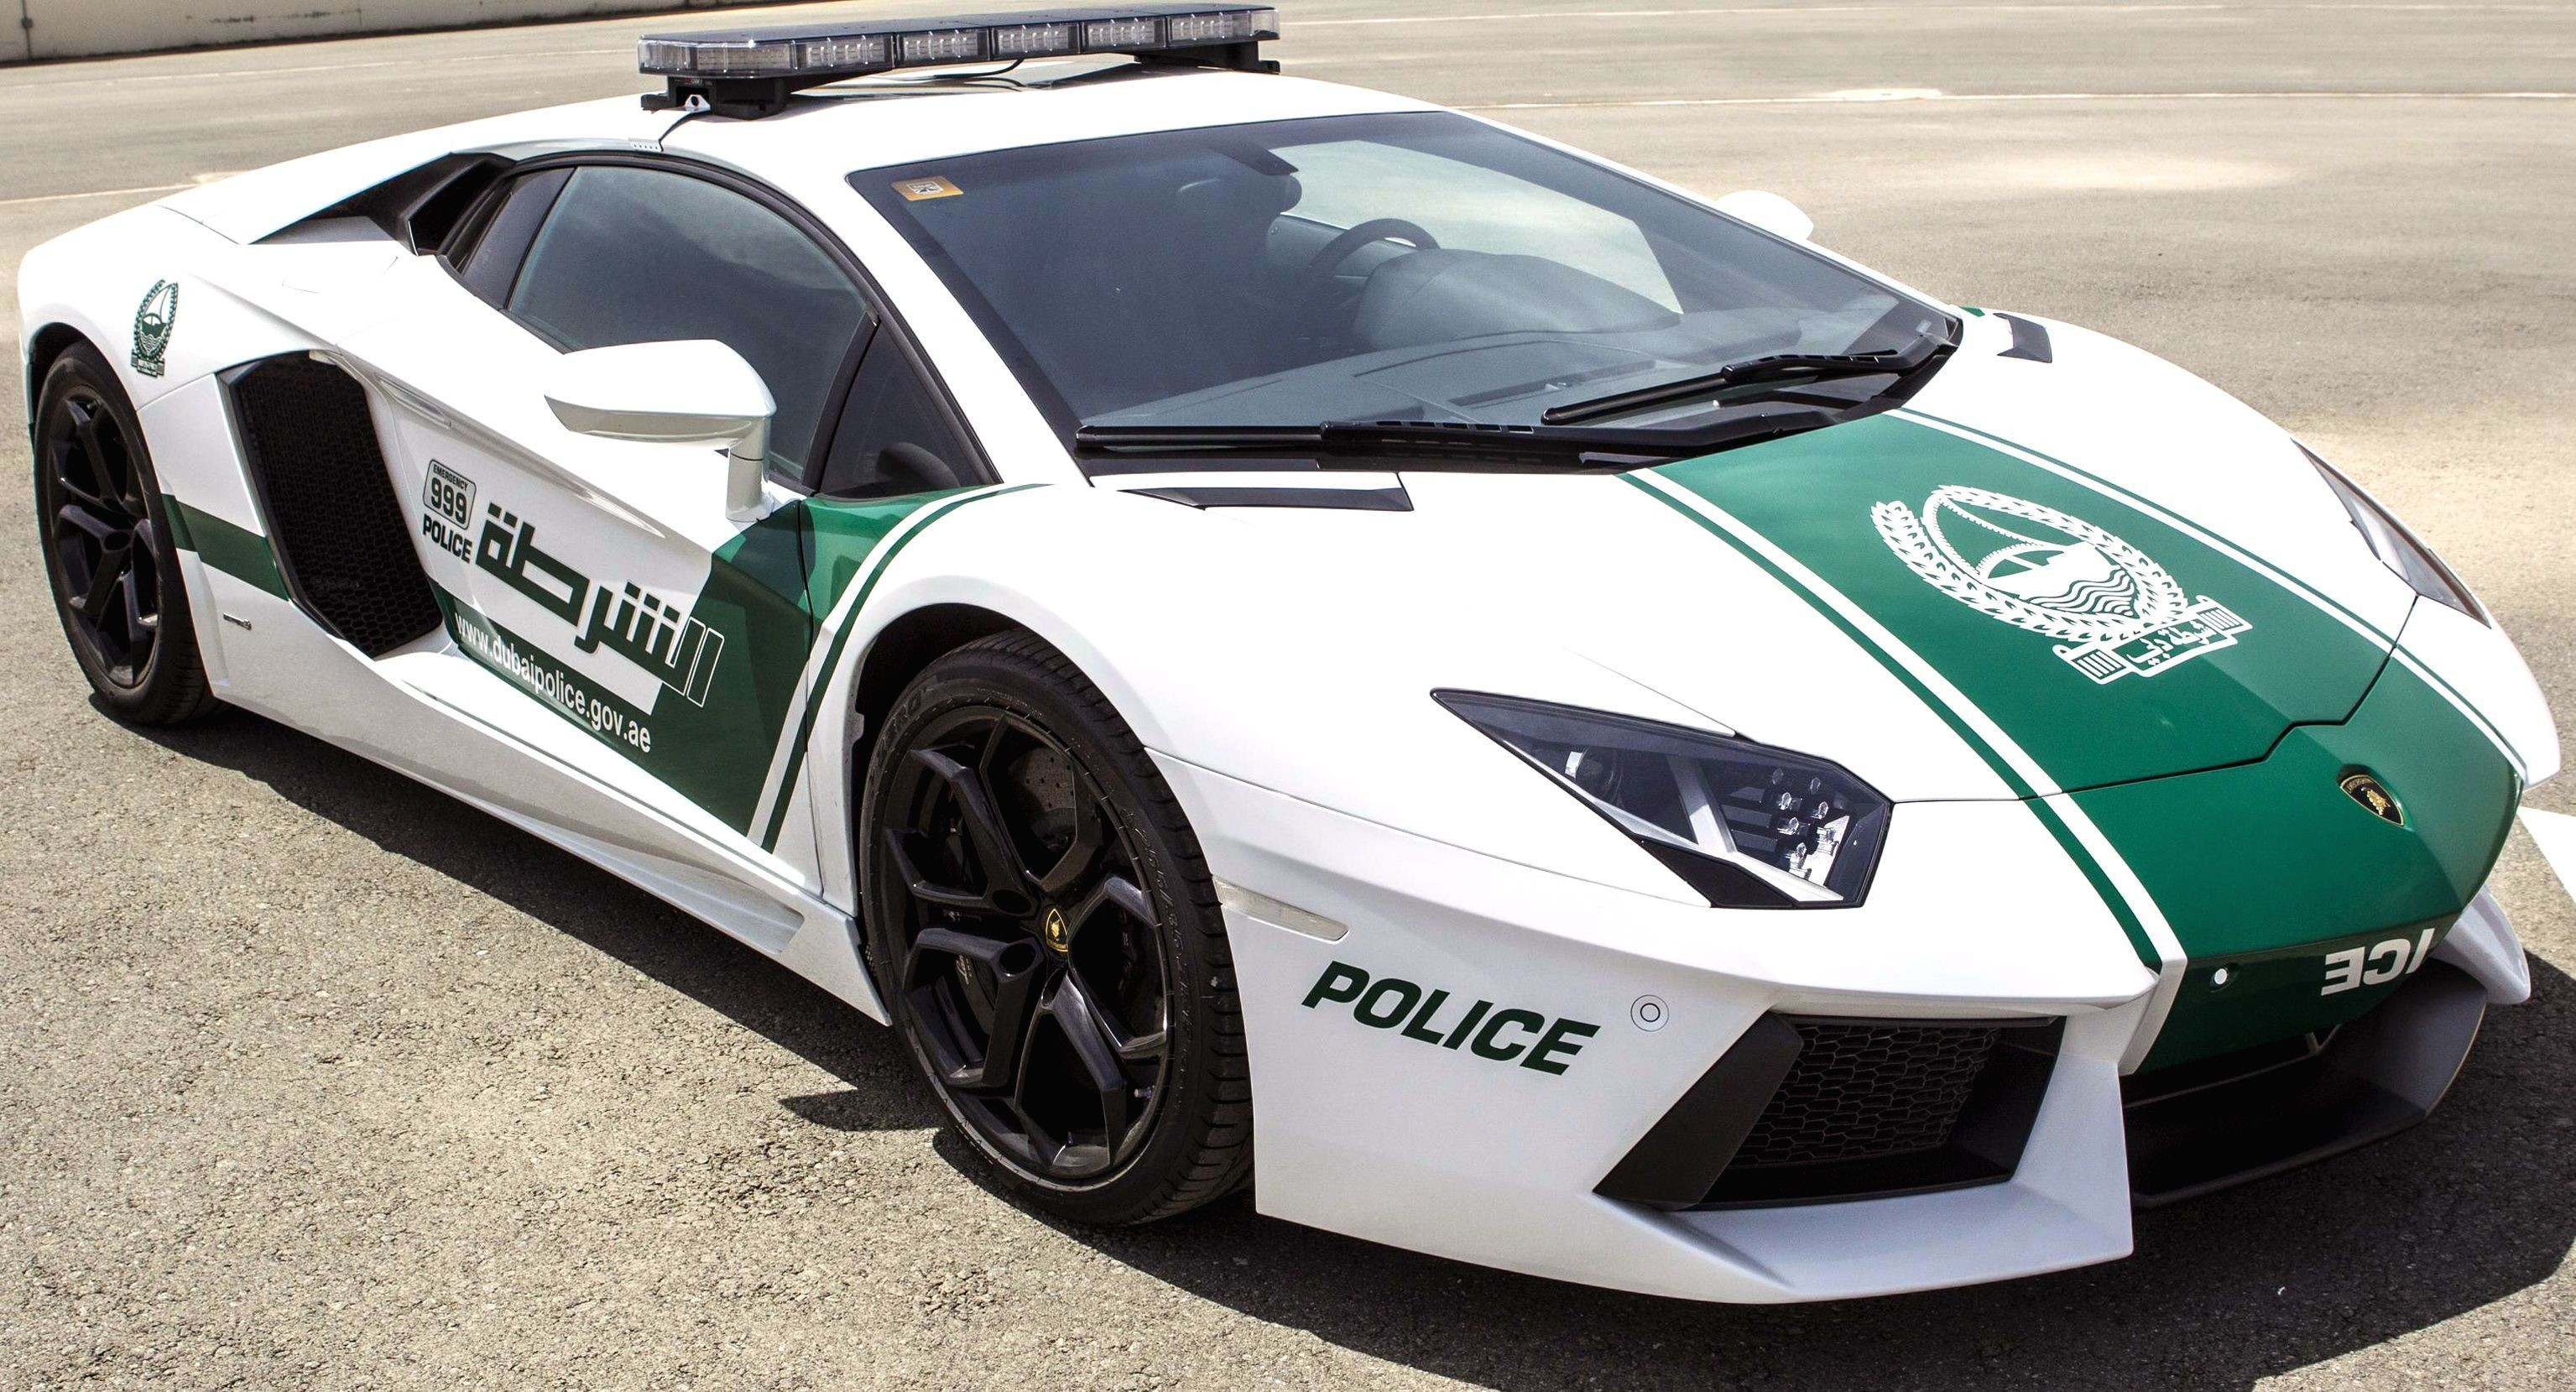 3070x1659 dubai police car wallpapers Archives - Free Wallpaper In